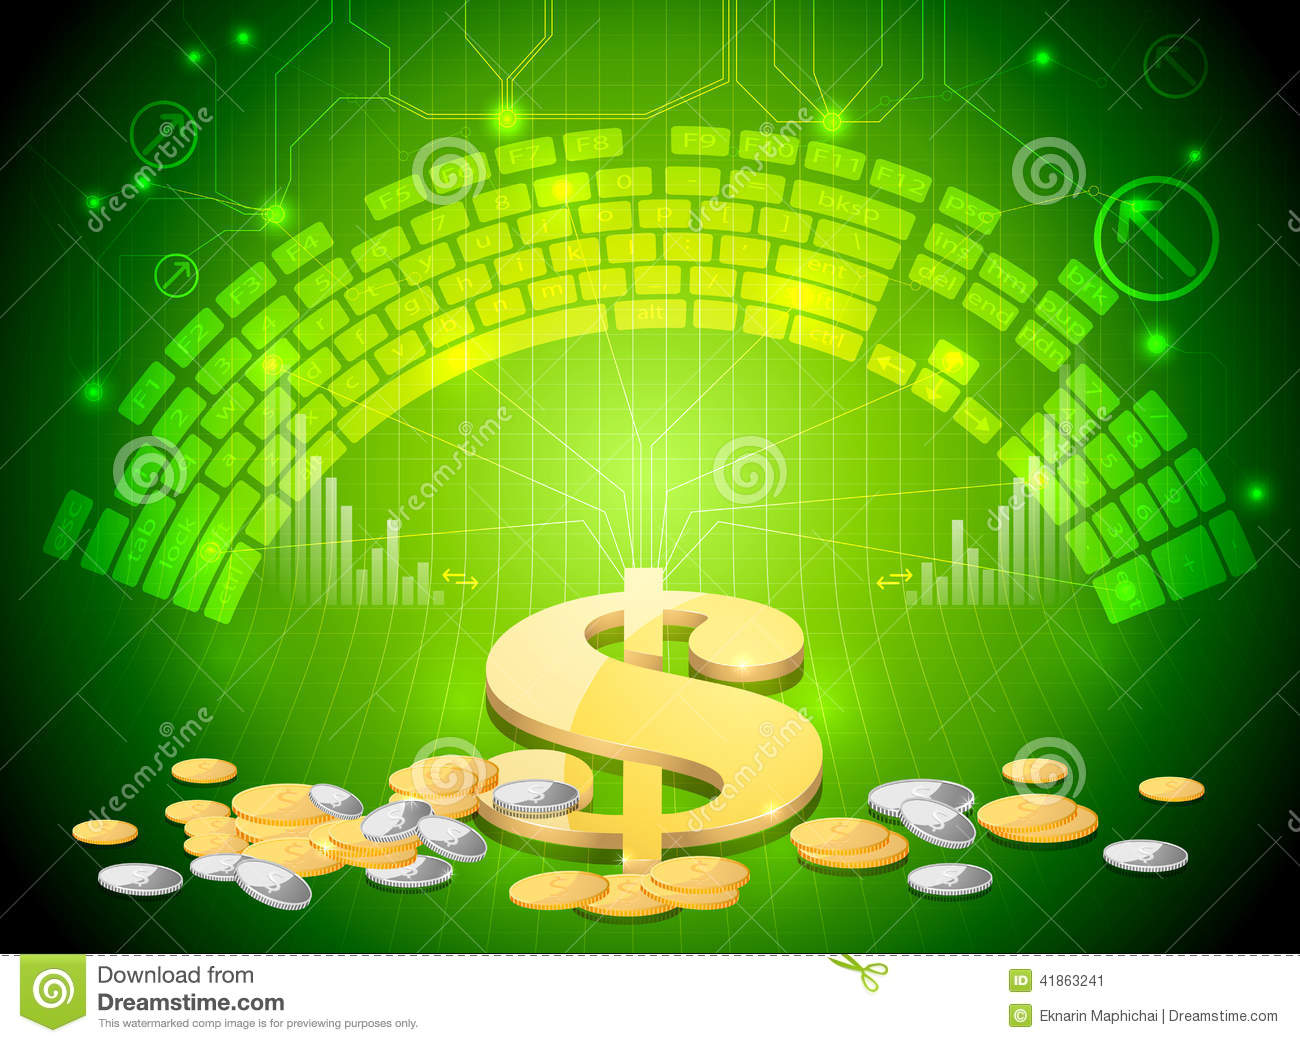 Option trading as a business